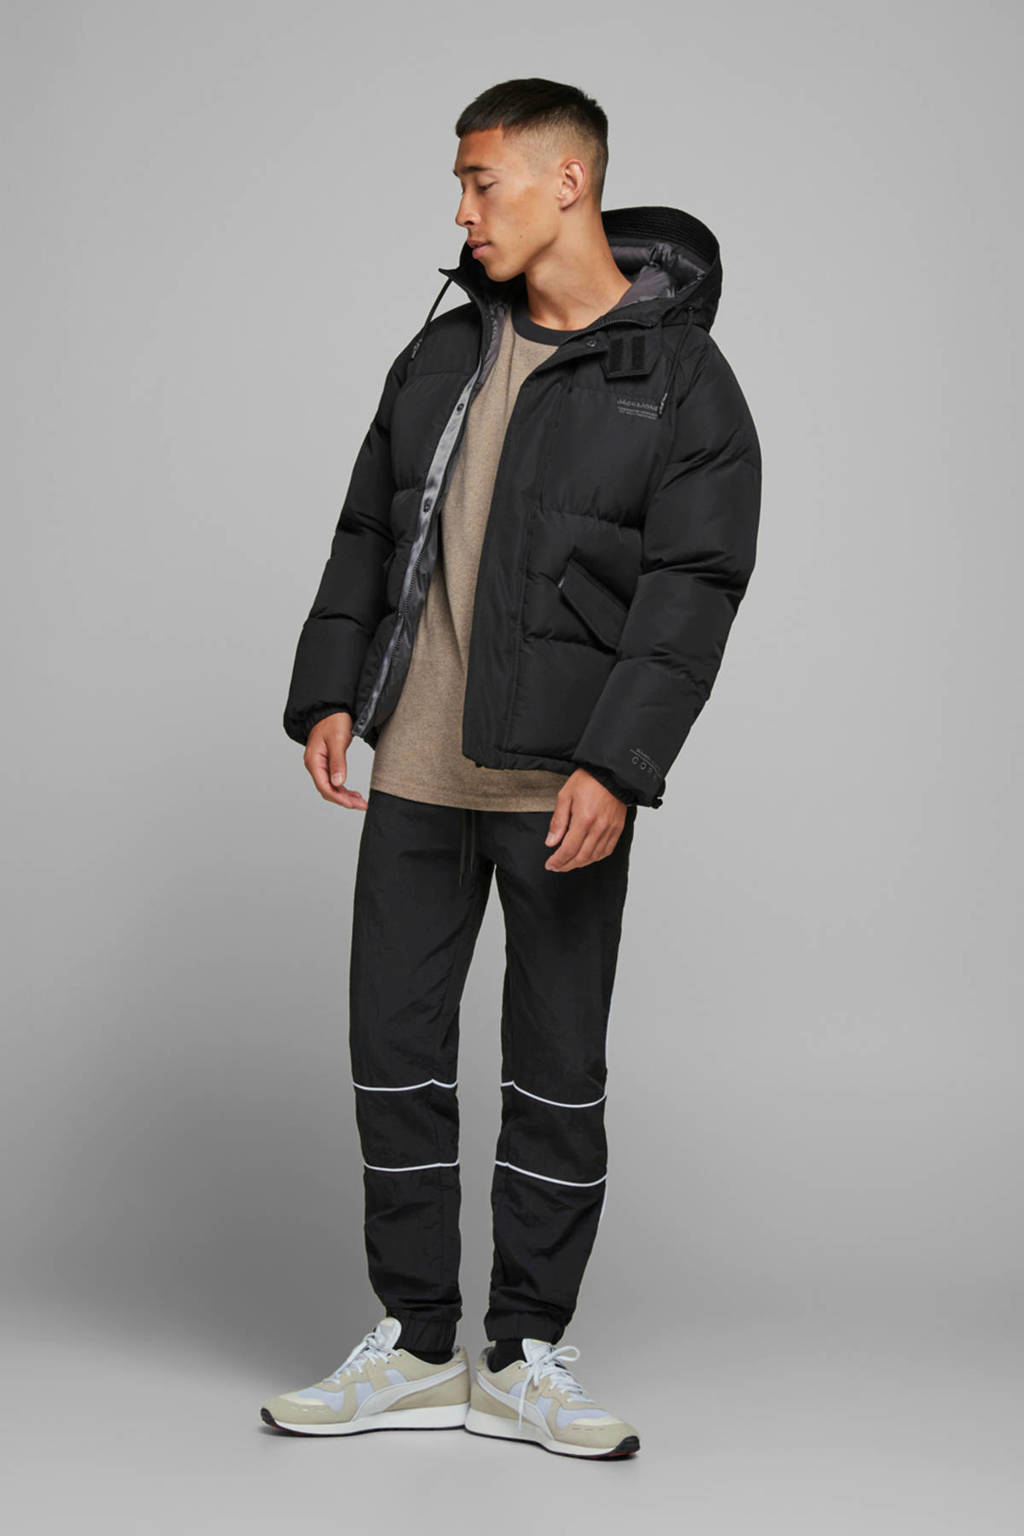 JACK & JONES CORE winterjas zwart, Zwart